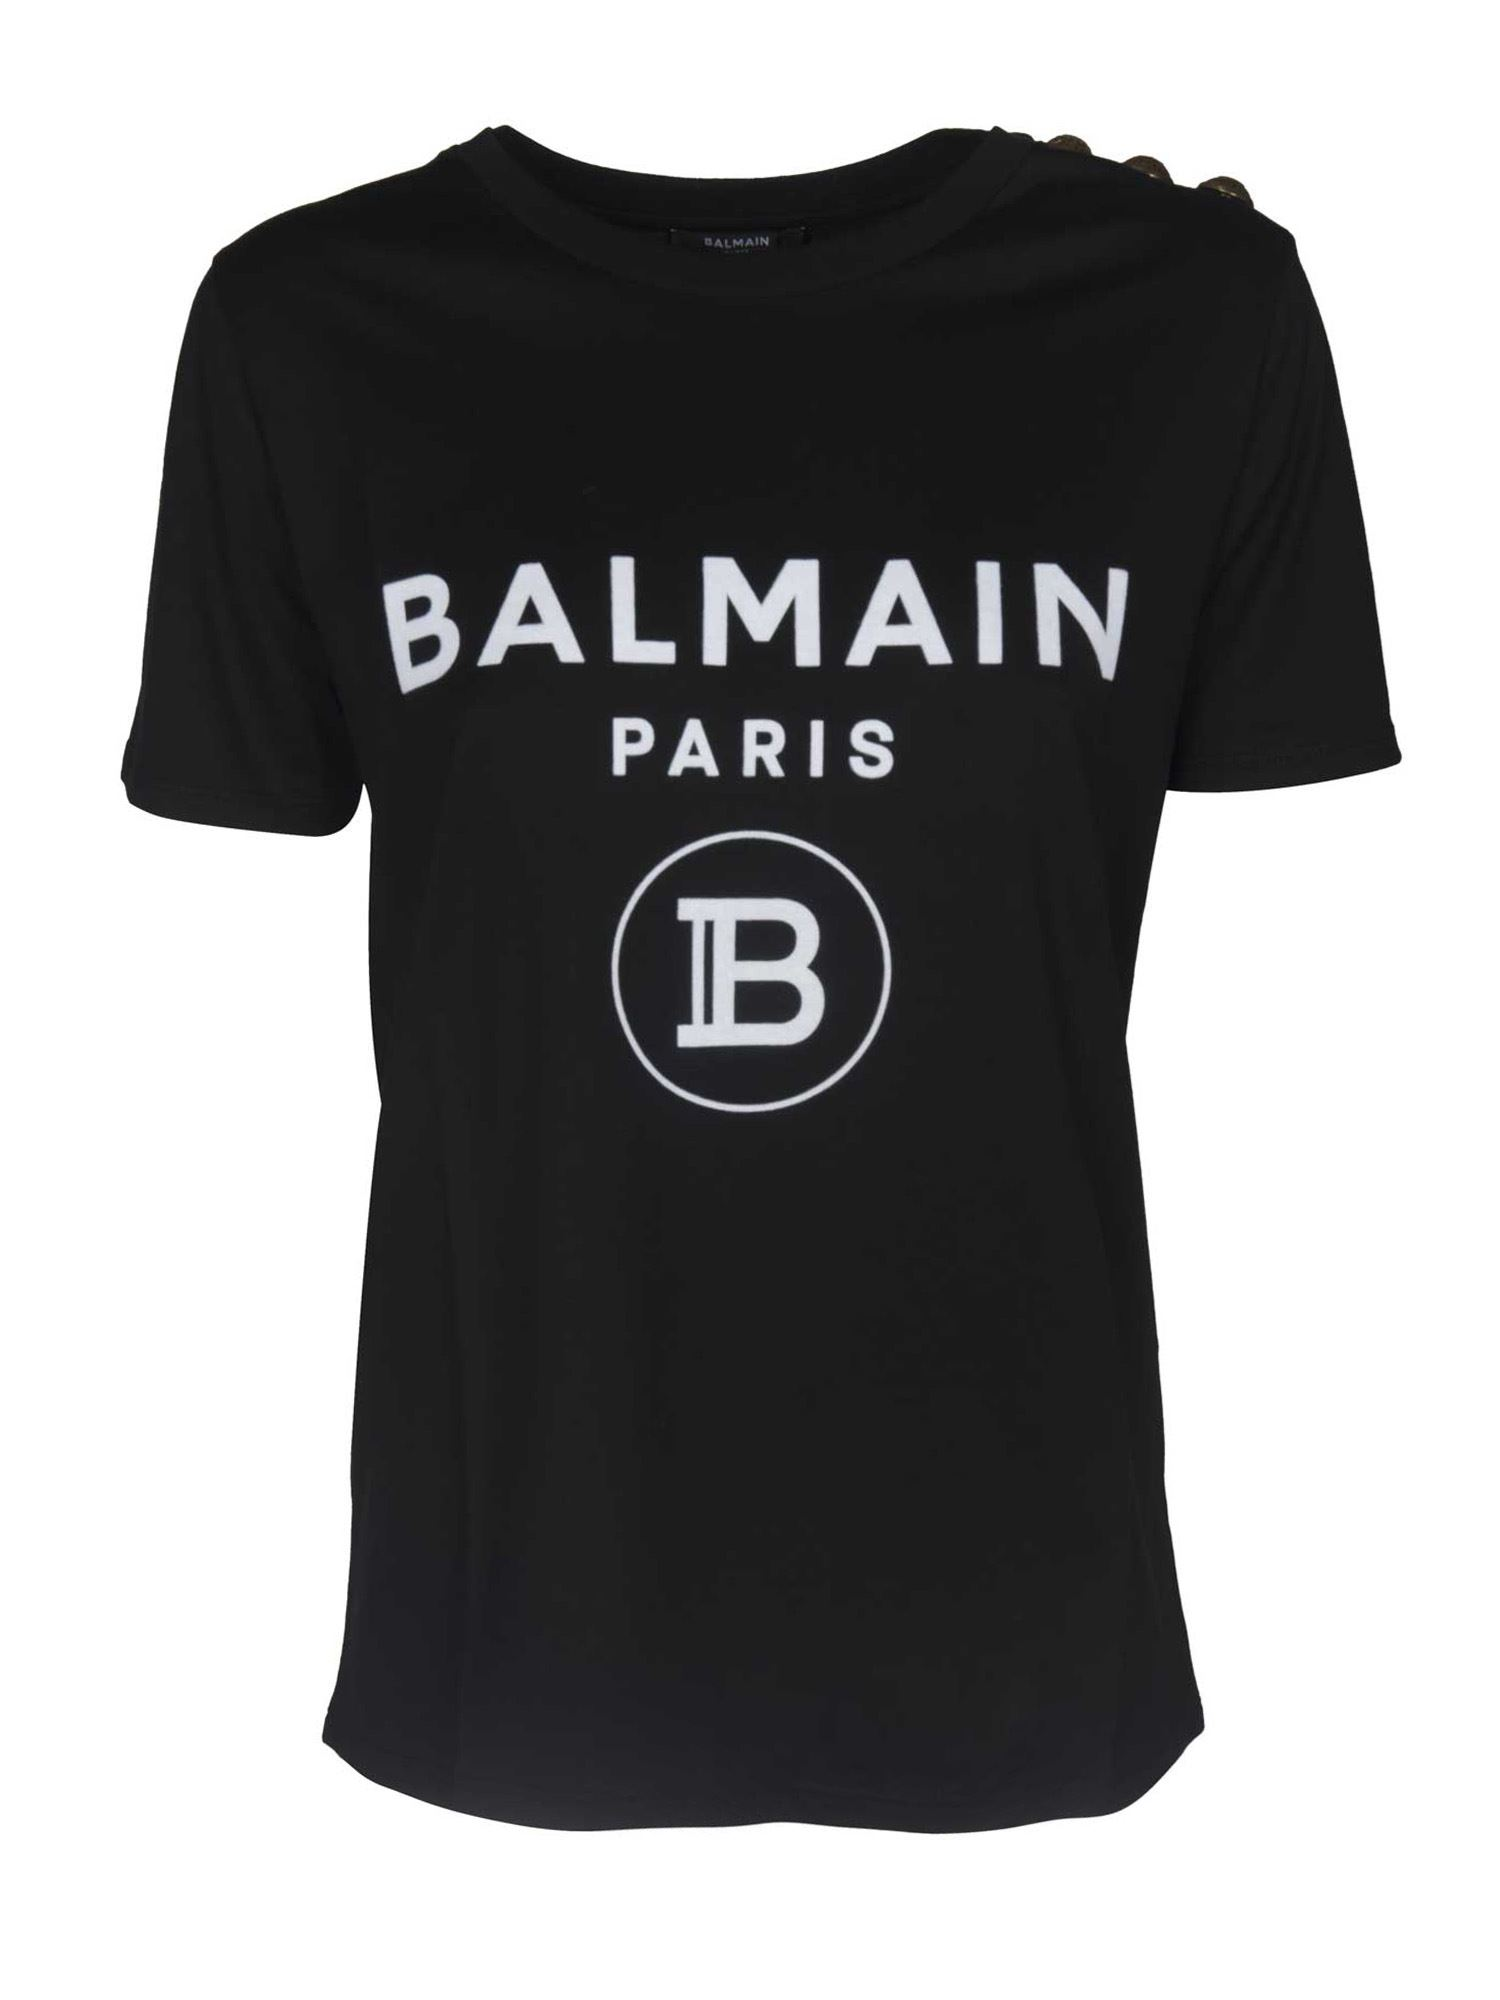 Balmain T-SHIRT IN BLACK WITH FLOCK LOGO PRINT